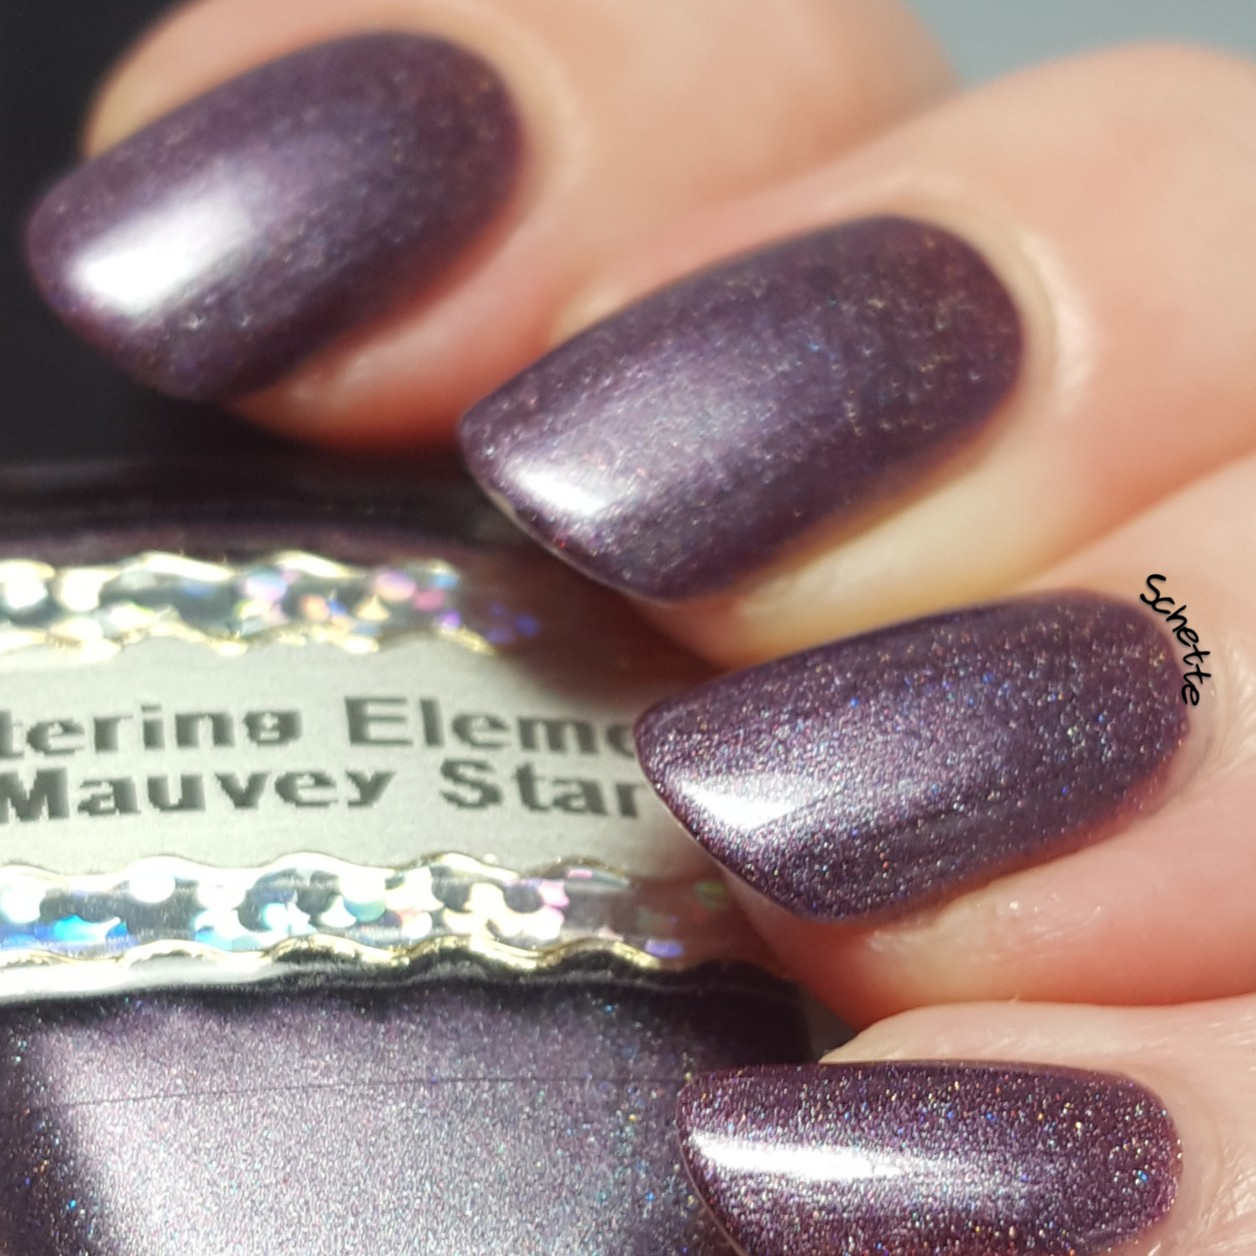 Glittering Elements - Mauvey Star